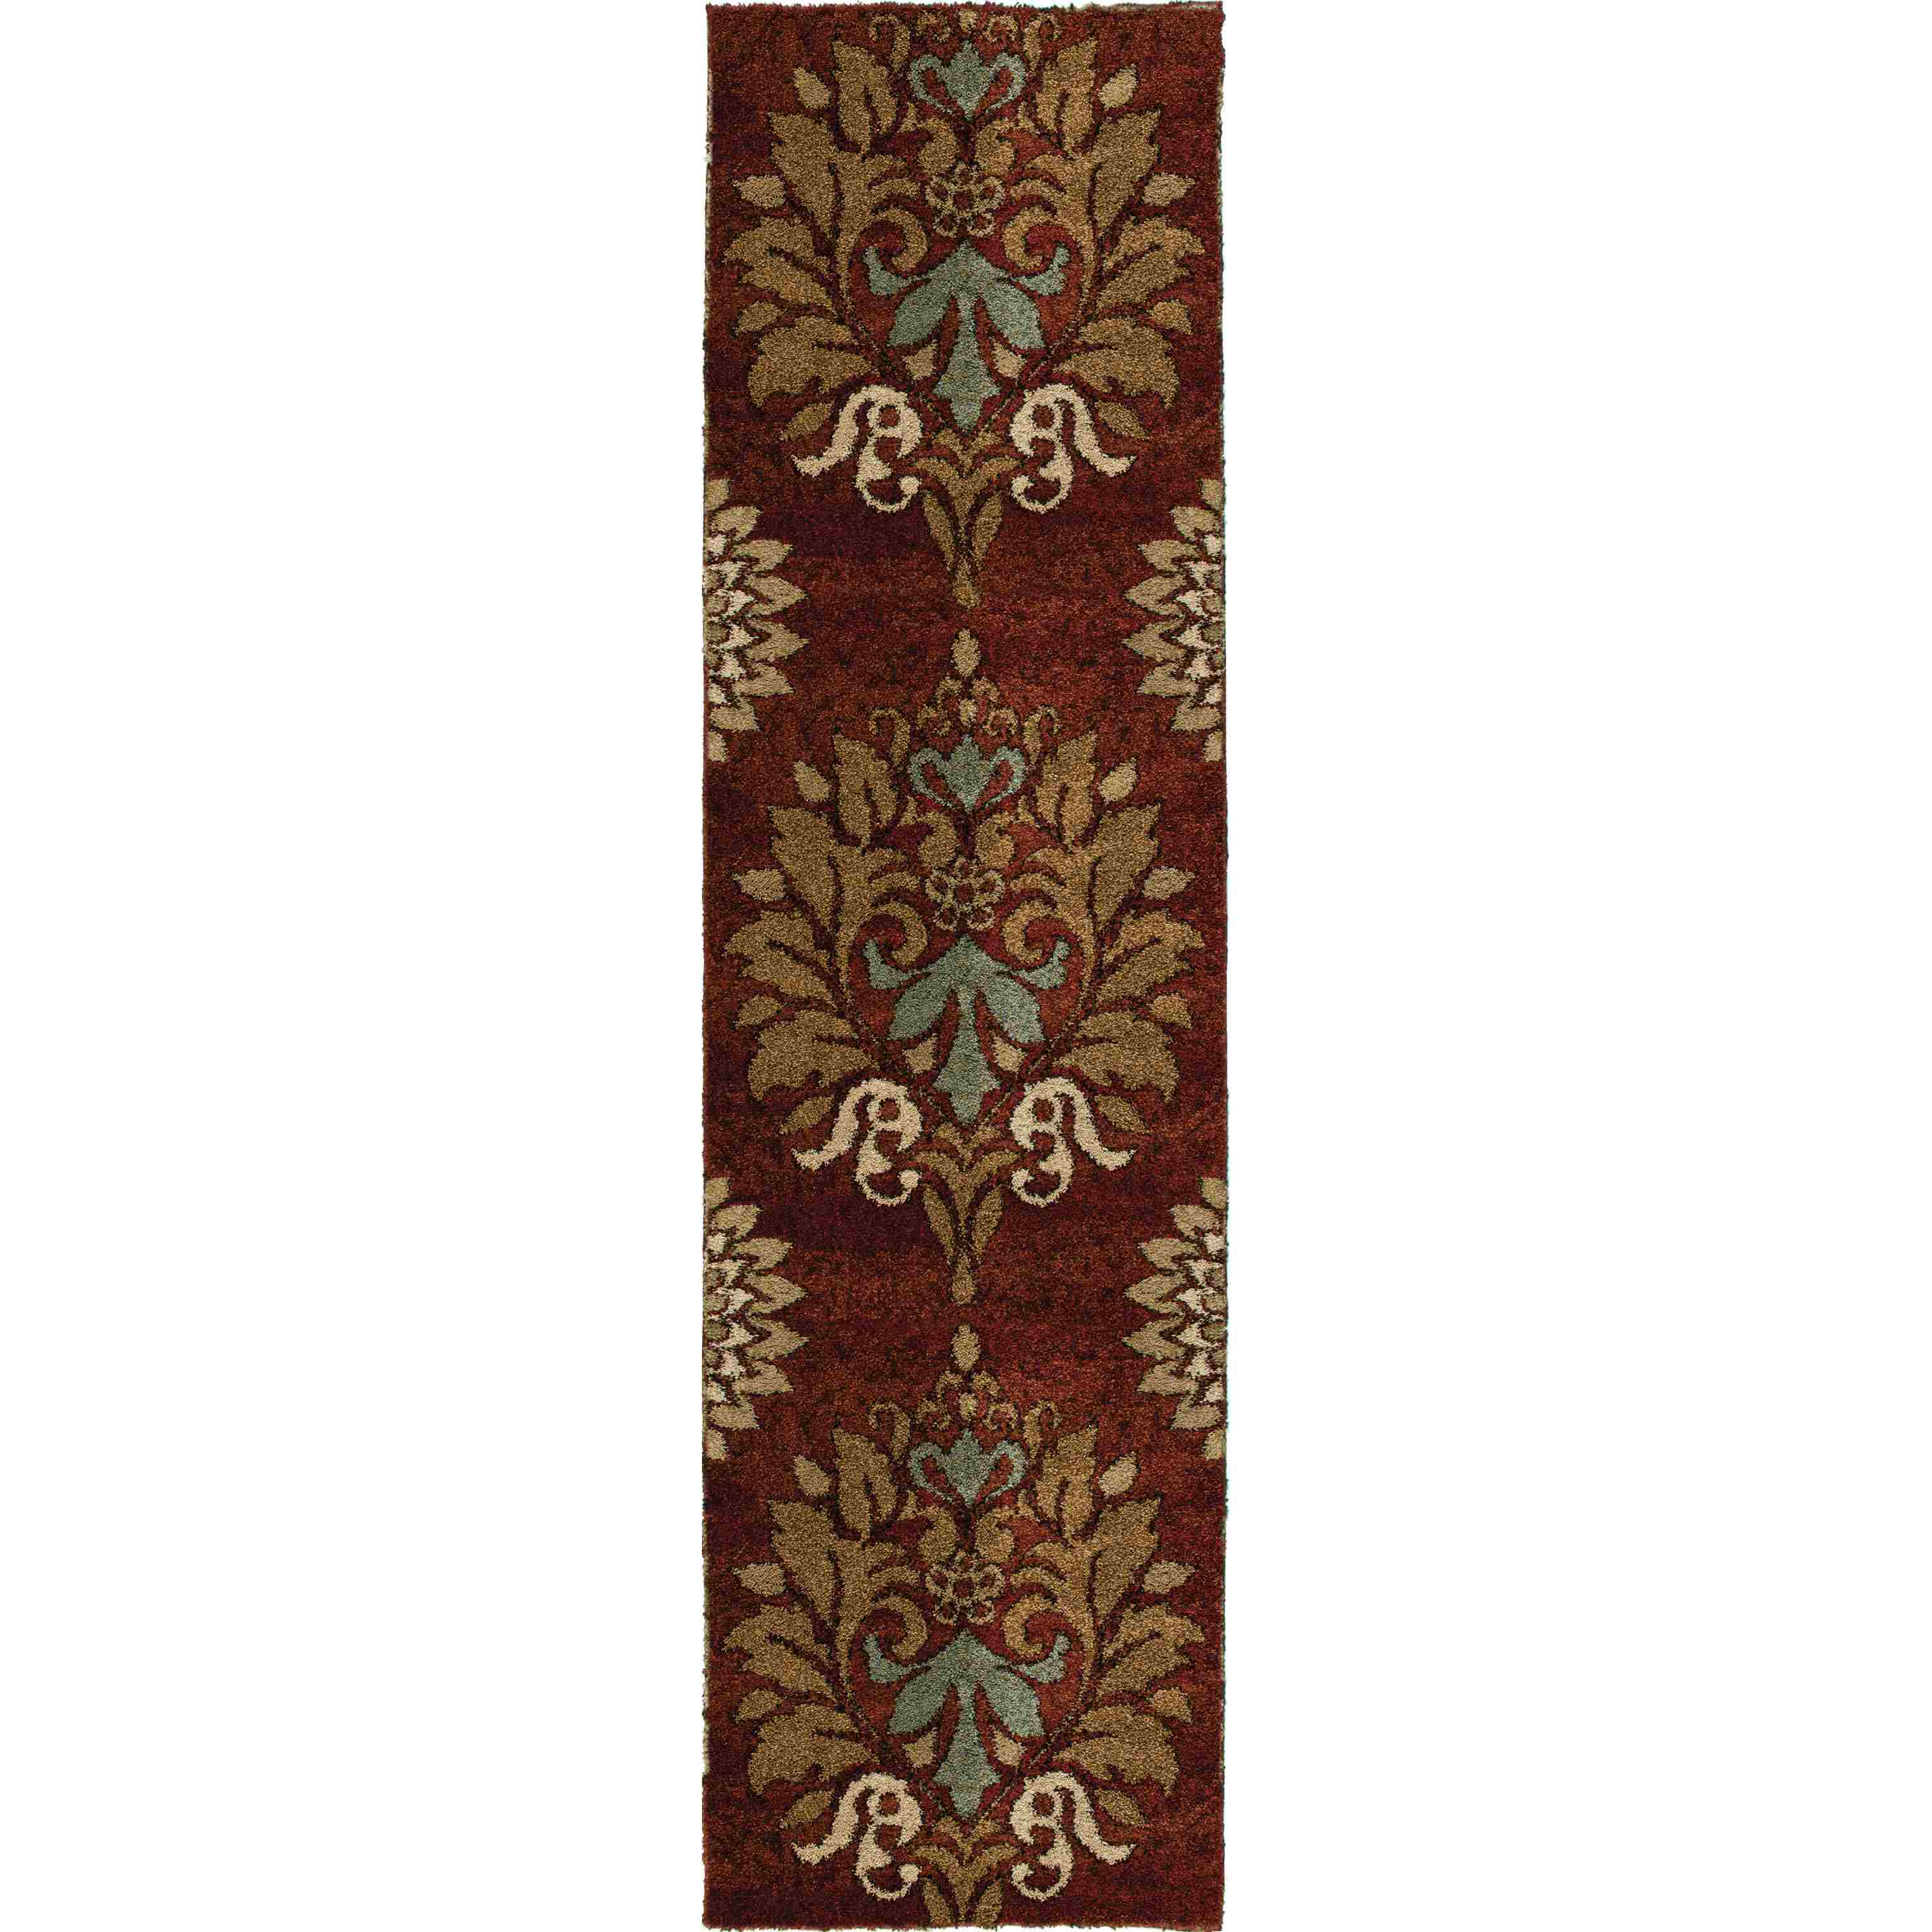 Orian Rugs Plush Damask Jacqueline Rouge Runner